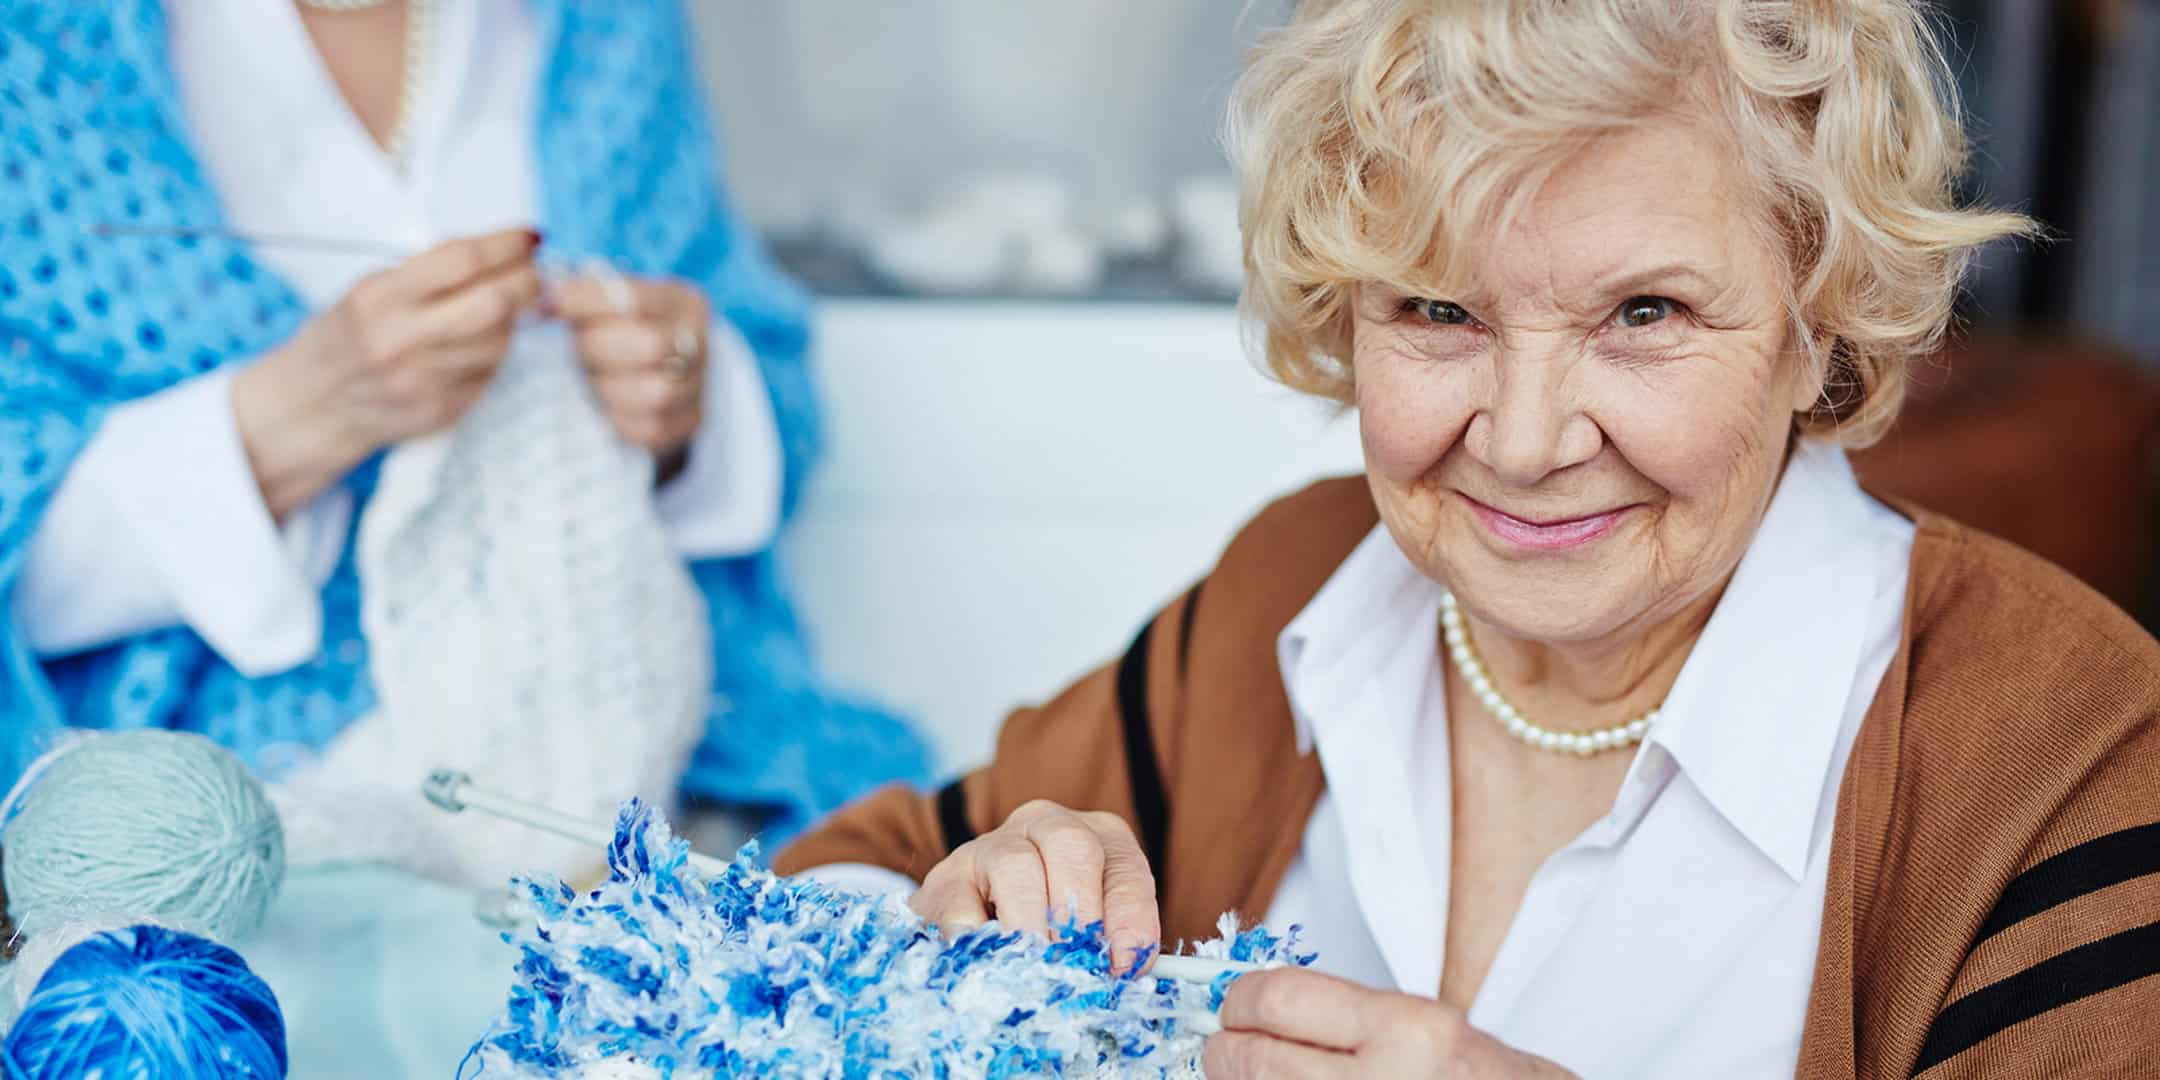 Crafts for Seniors: 52 Fun and Simple Ideas That Inspire